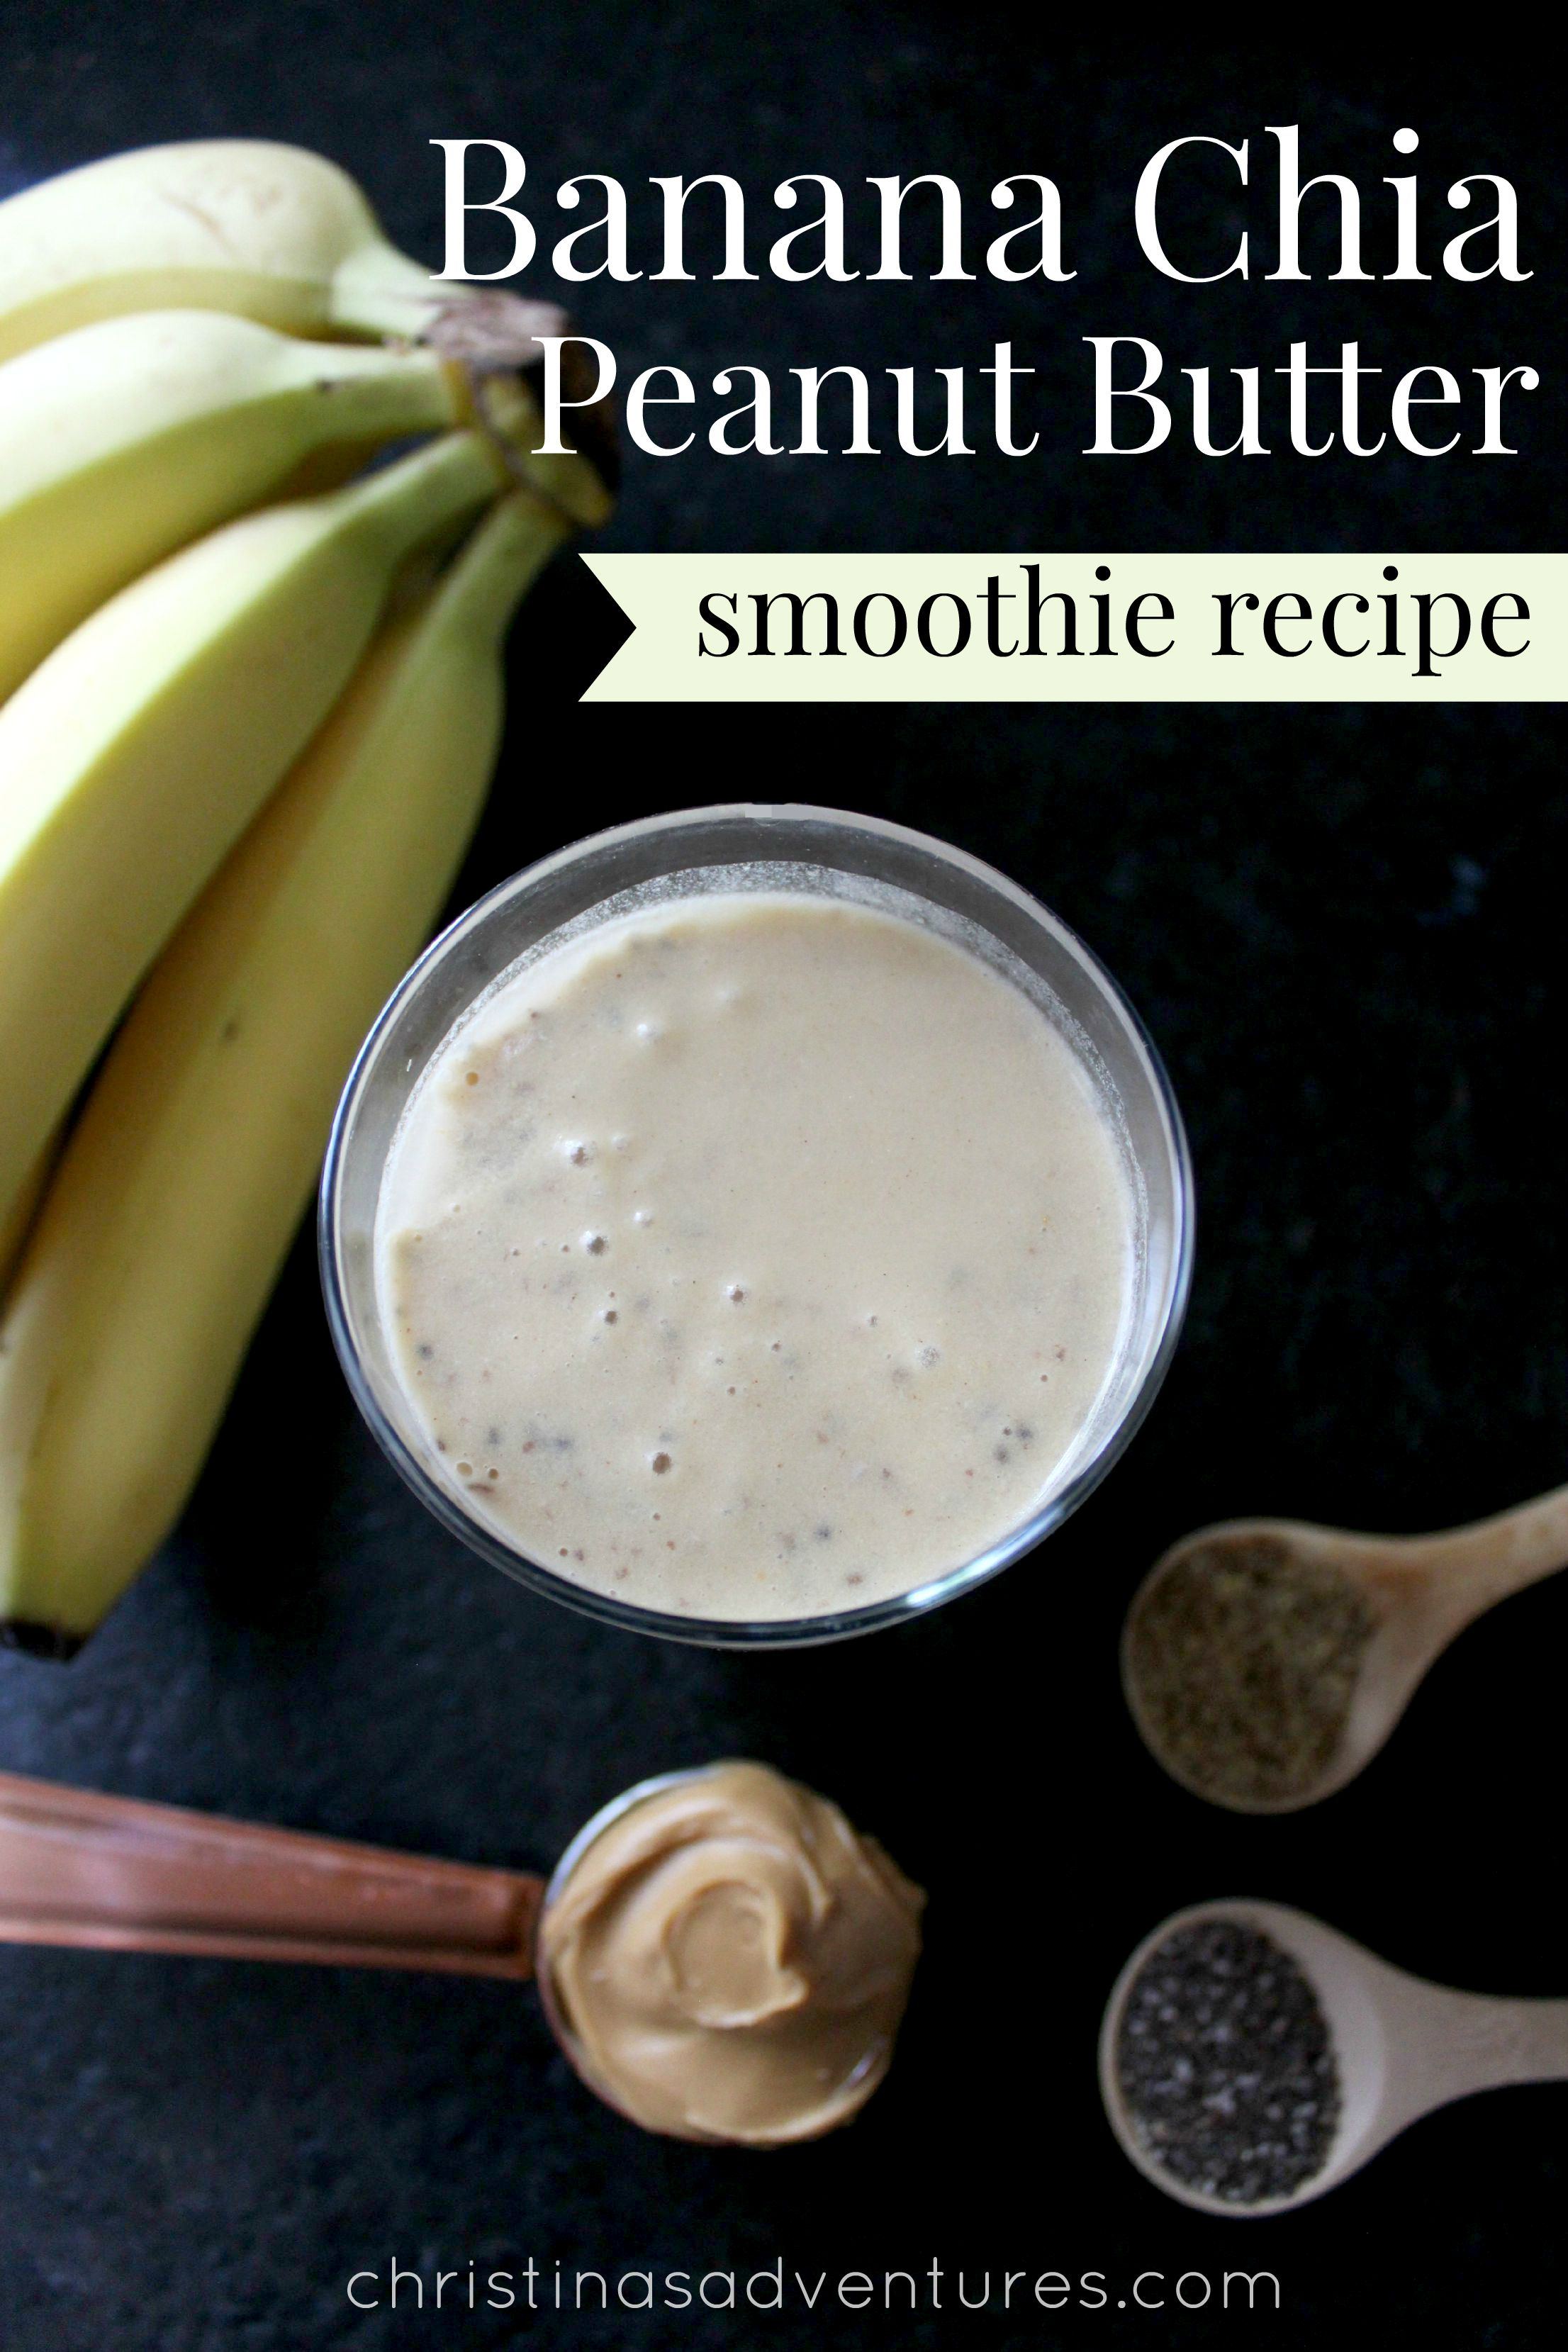 Banana Chia Peanut Butter Smoothie Recipe